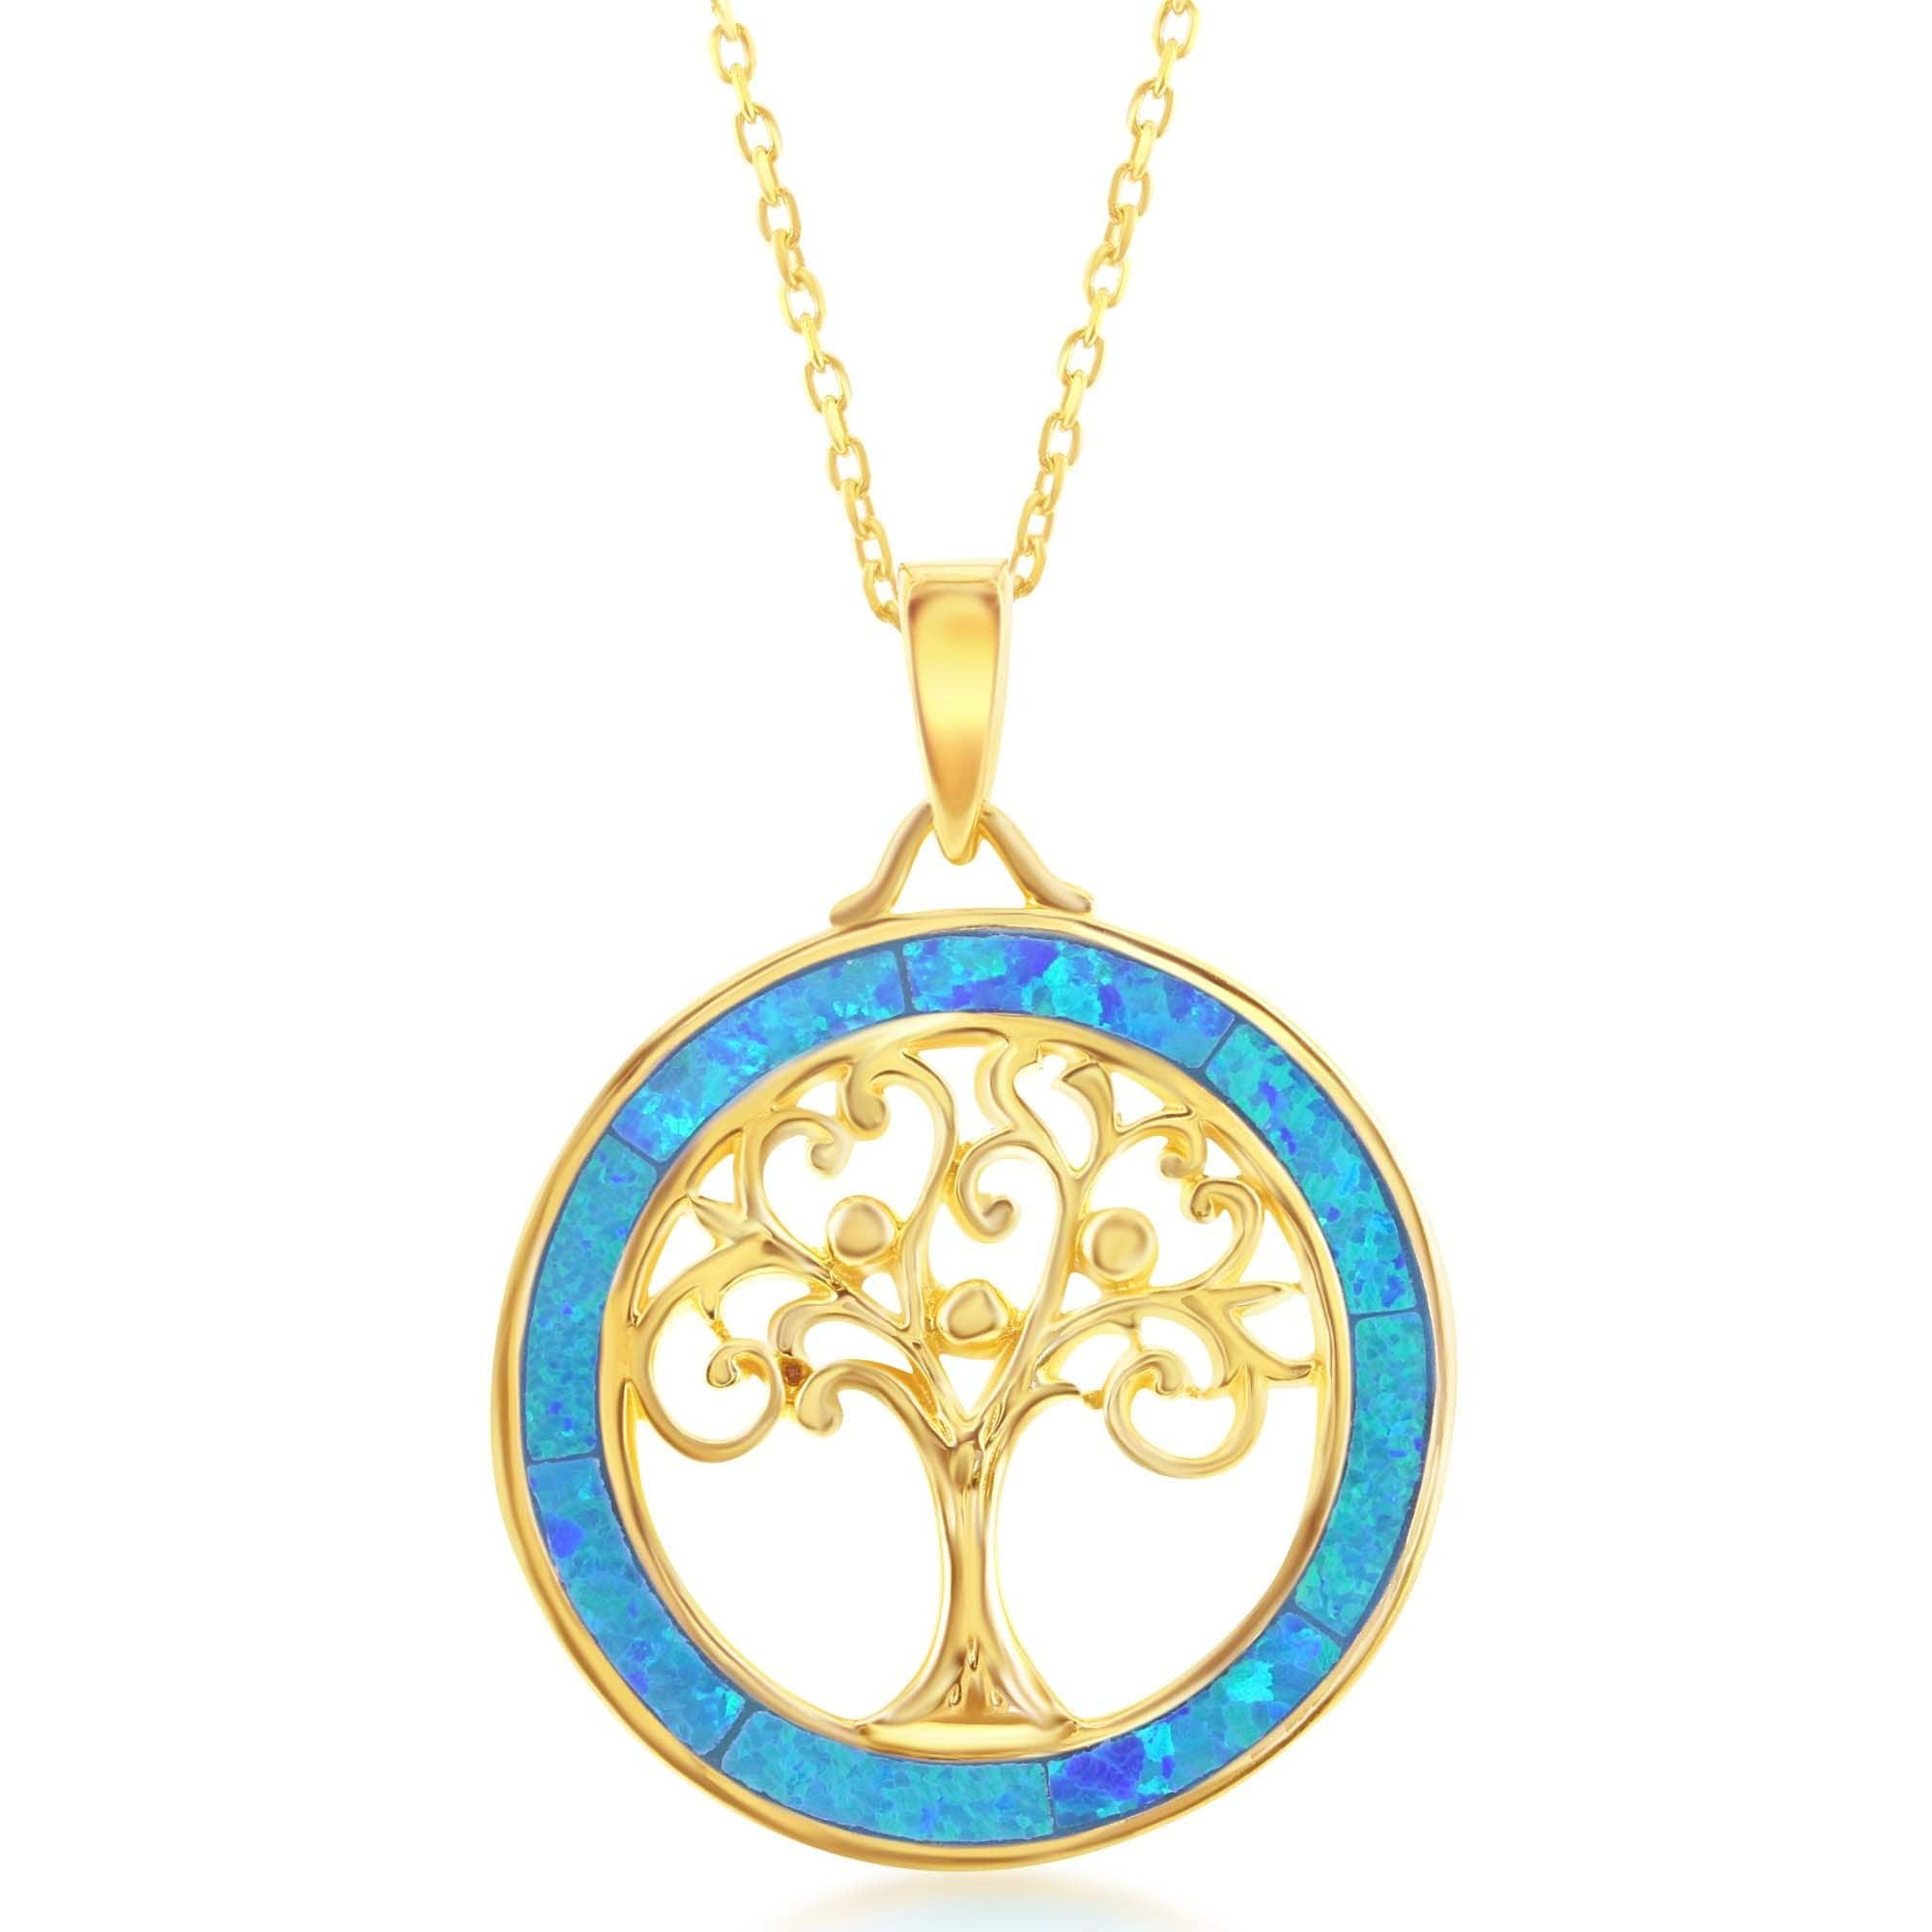 La preciosa sterling silver gold plated tree of life pendant la preciosa sterling silver gold plated tree of life pendant necklace free shipping on orders over 45 overstock 15539389 aloadofball Choice Image